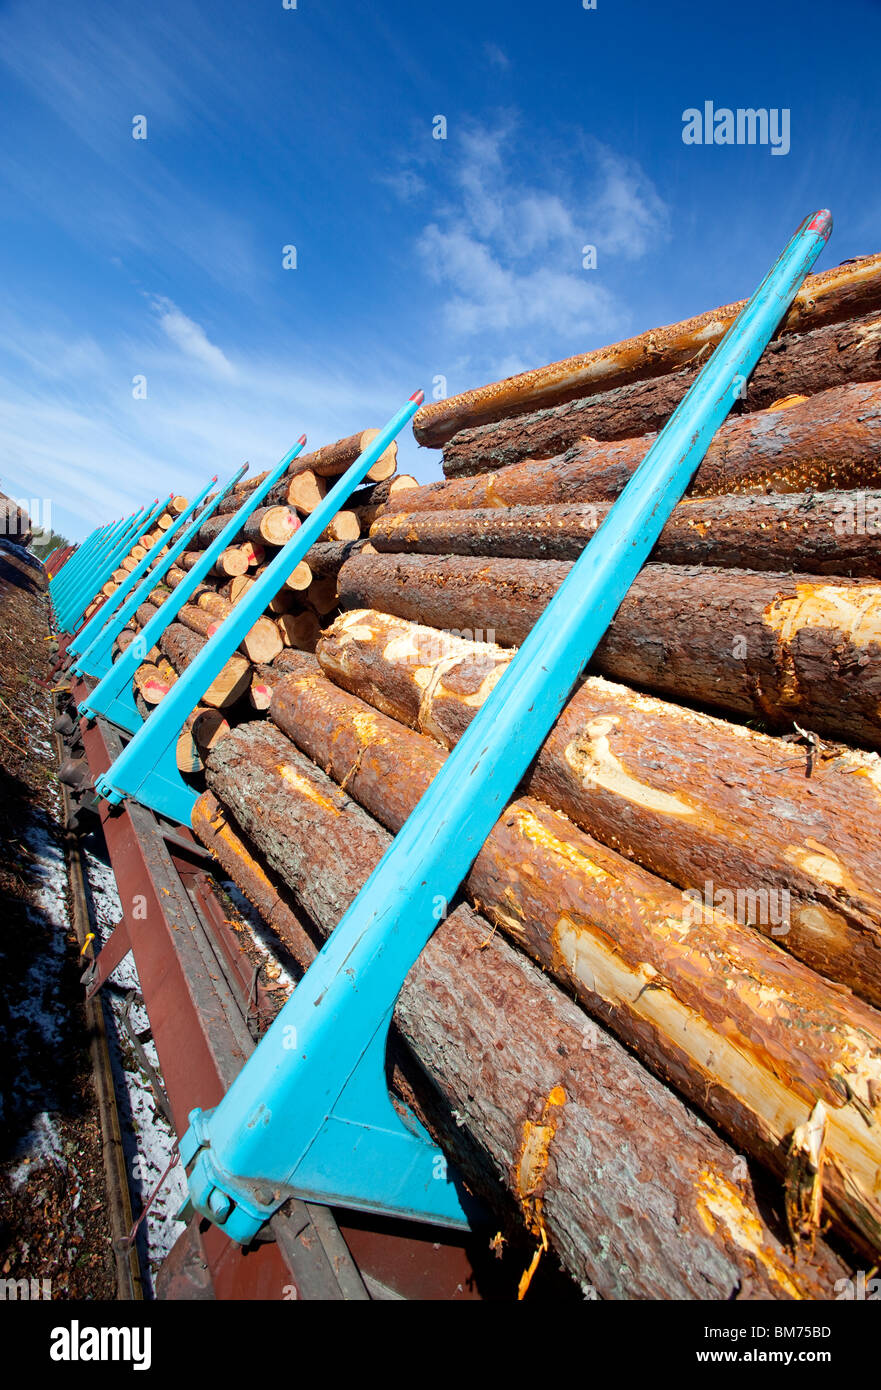 Cargo train loaded with pine ( pinus sylvestris ) logs , Finland - Stock Image